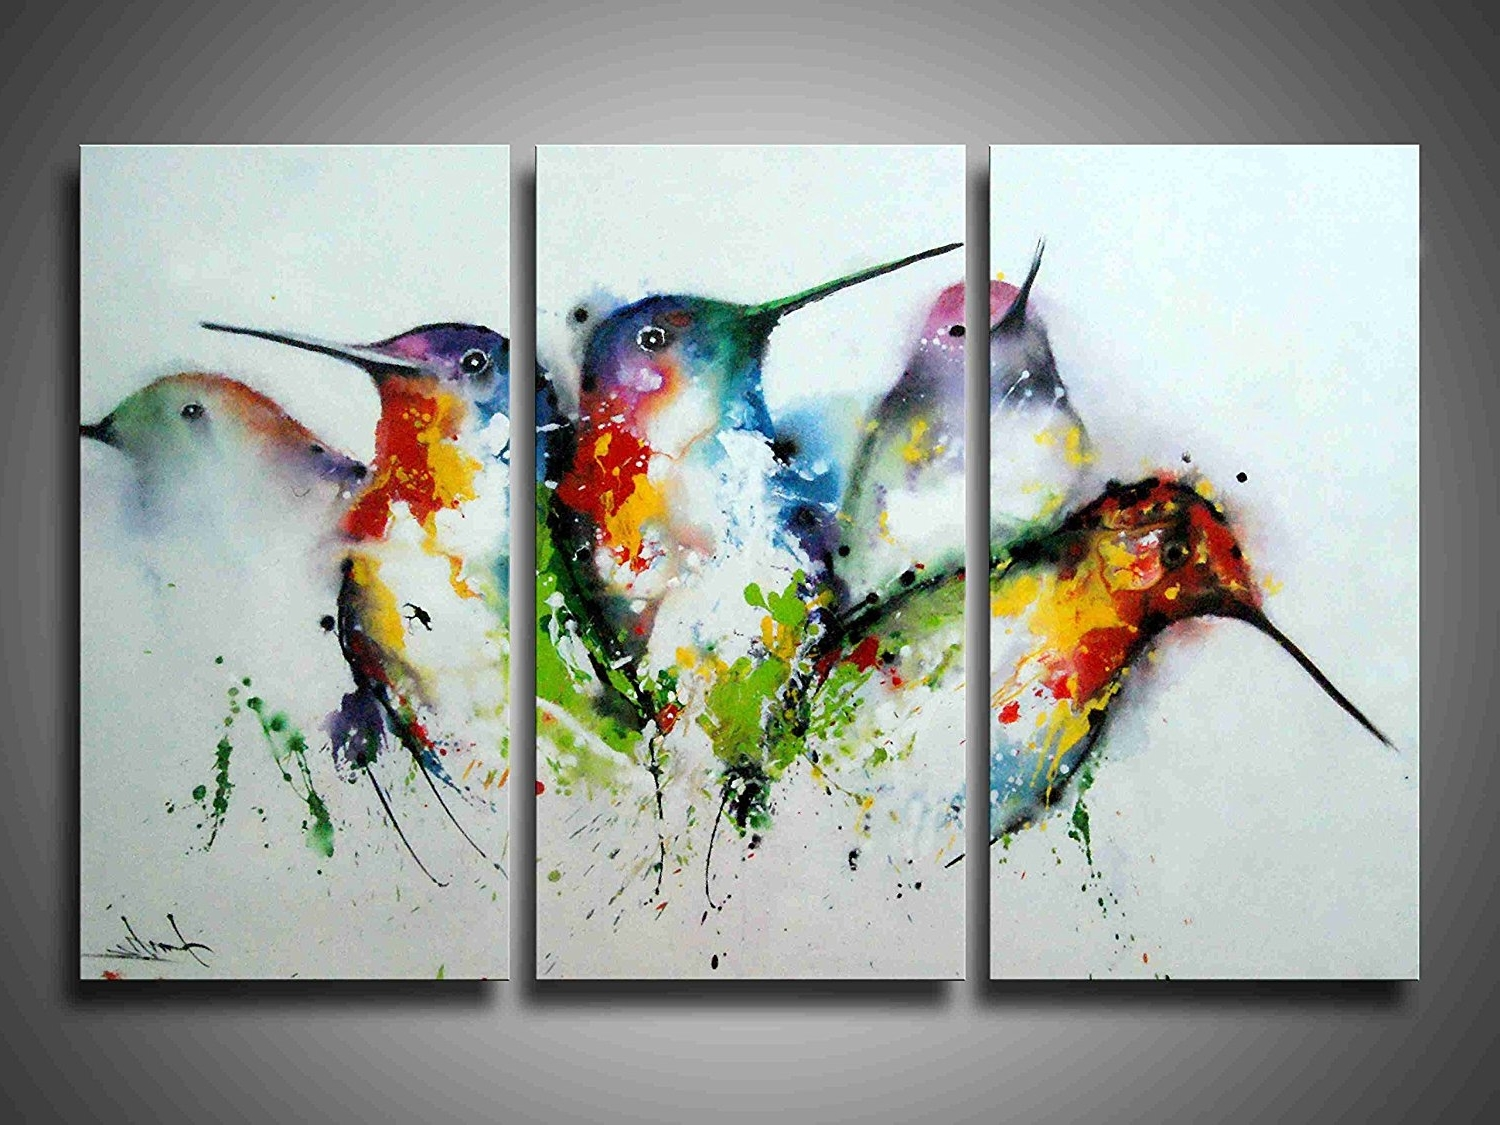 Bird Framed Canvas Wall Art With Regard To Popular 3 Piece Framed Wall Art Bird : Andrews Living Arts – Affordable (View 2 of 20)